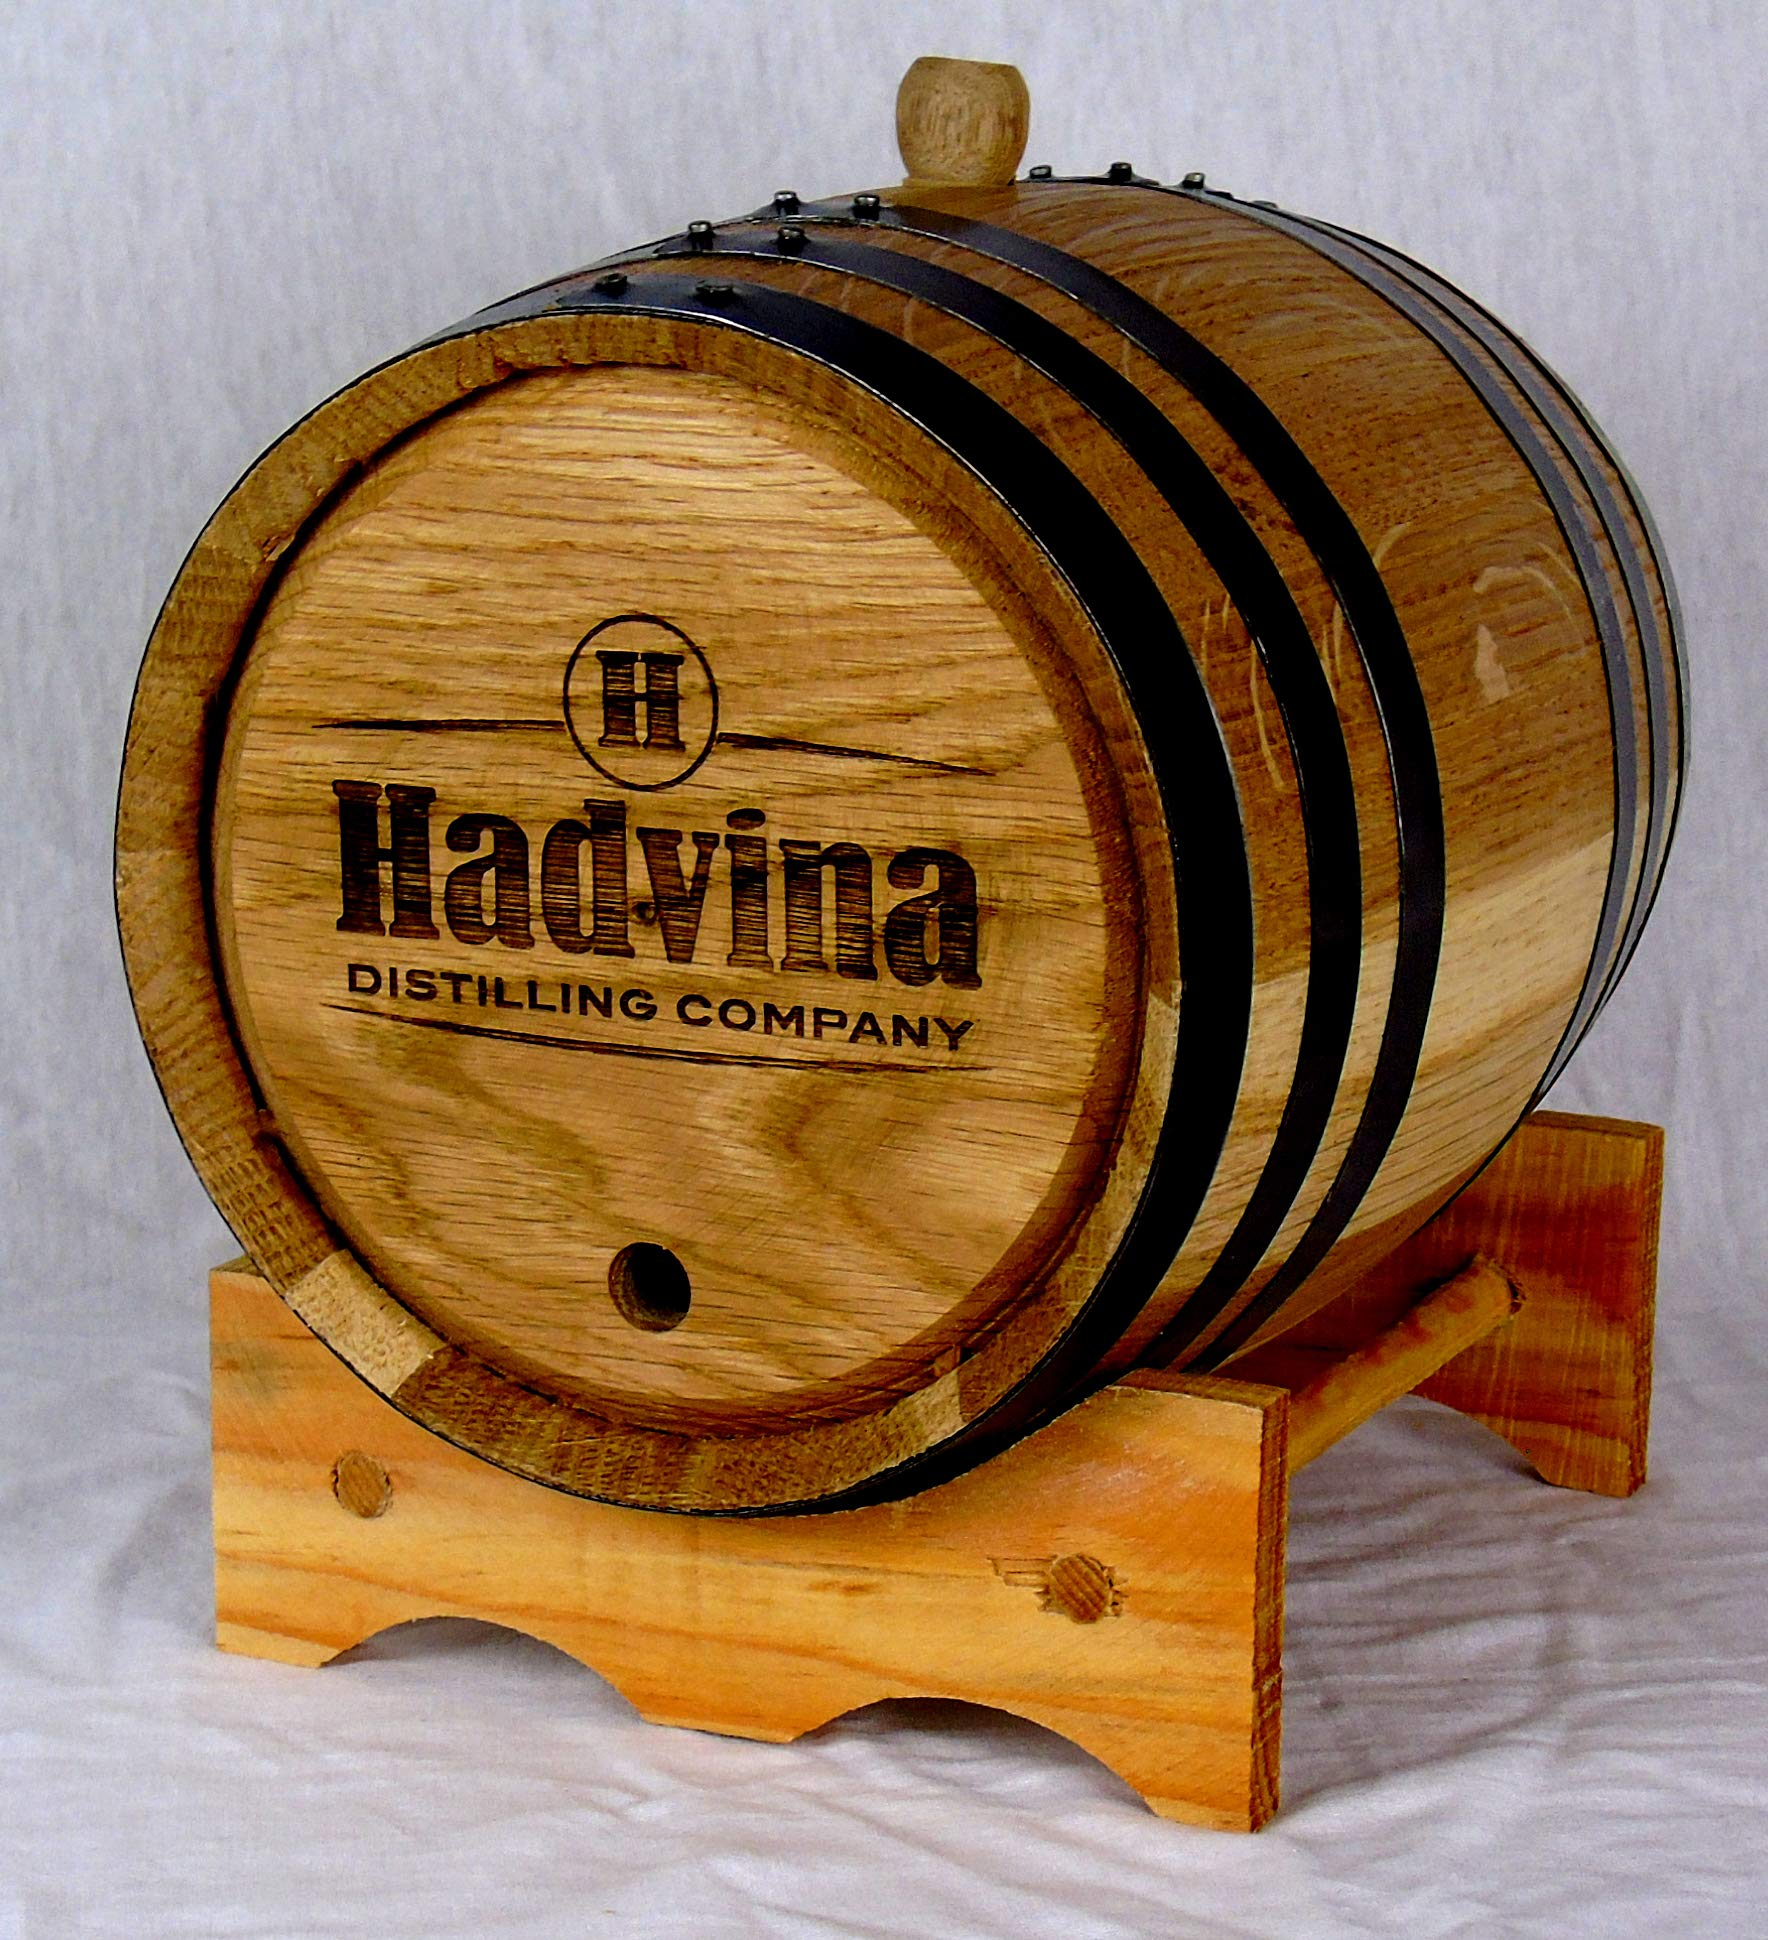 Personalized Engraved White American Oak Aging Barrels RHB135 (1 Liter)